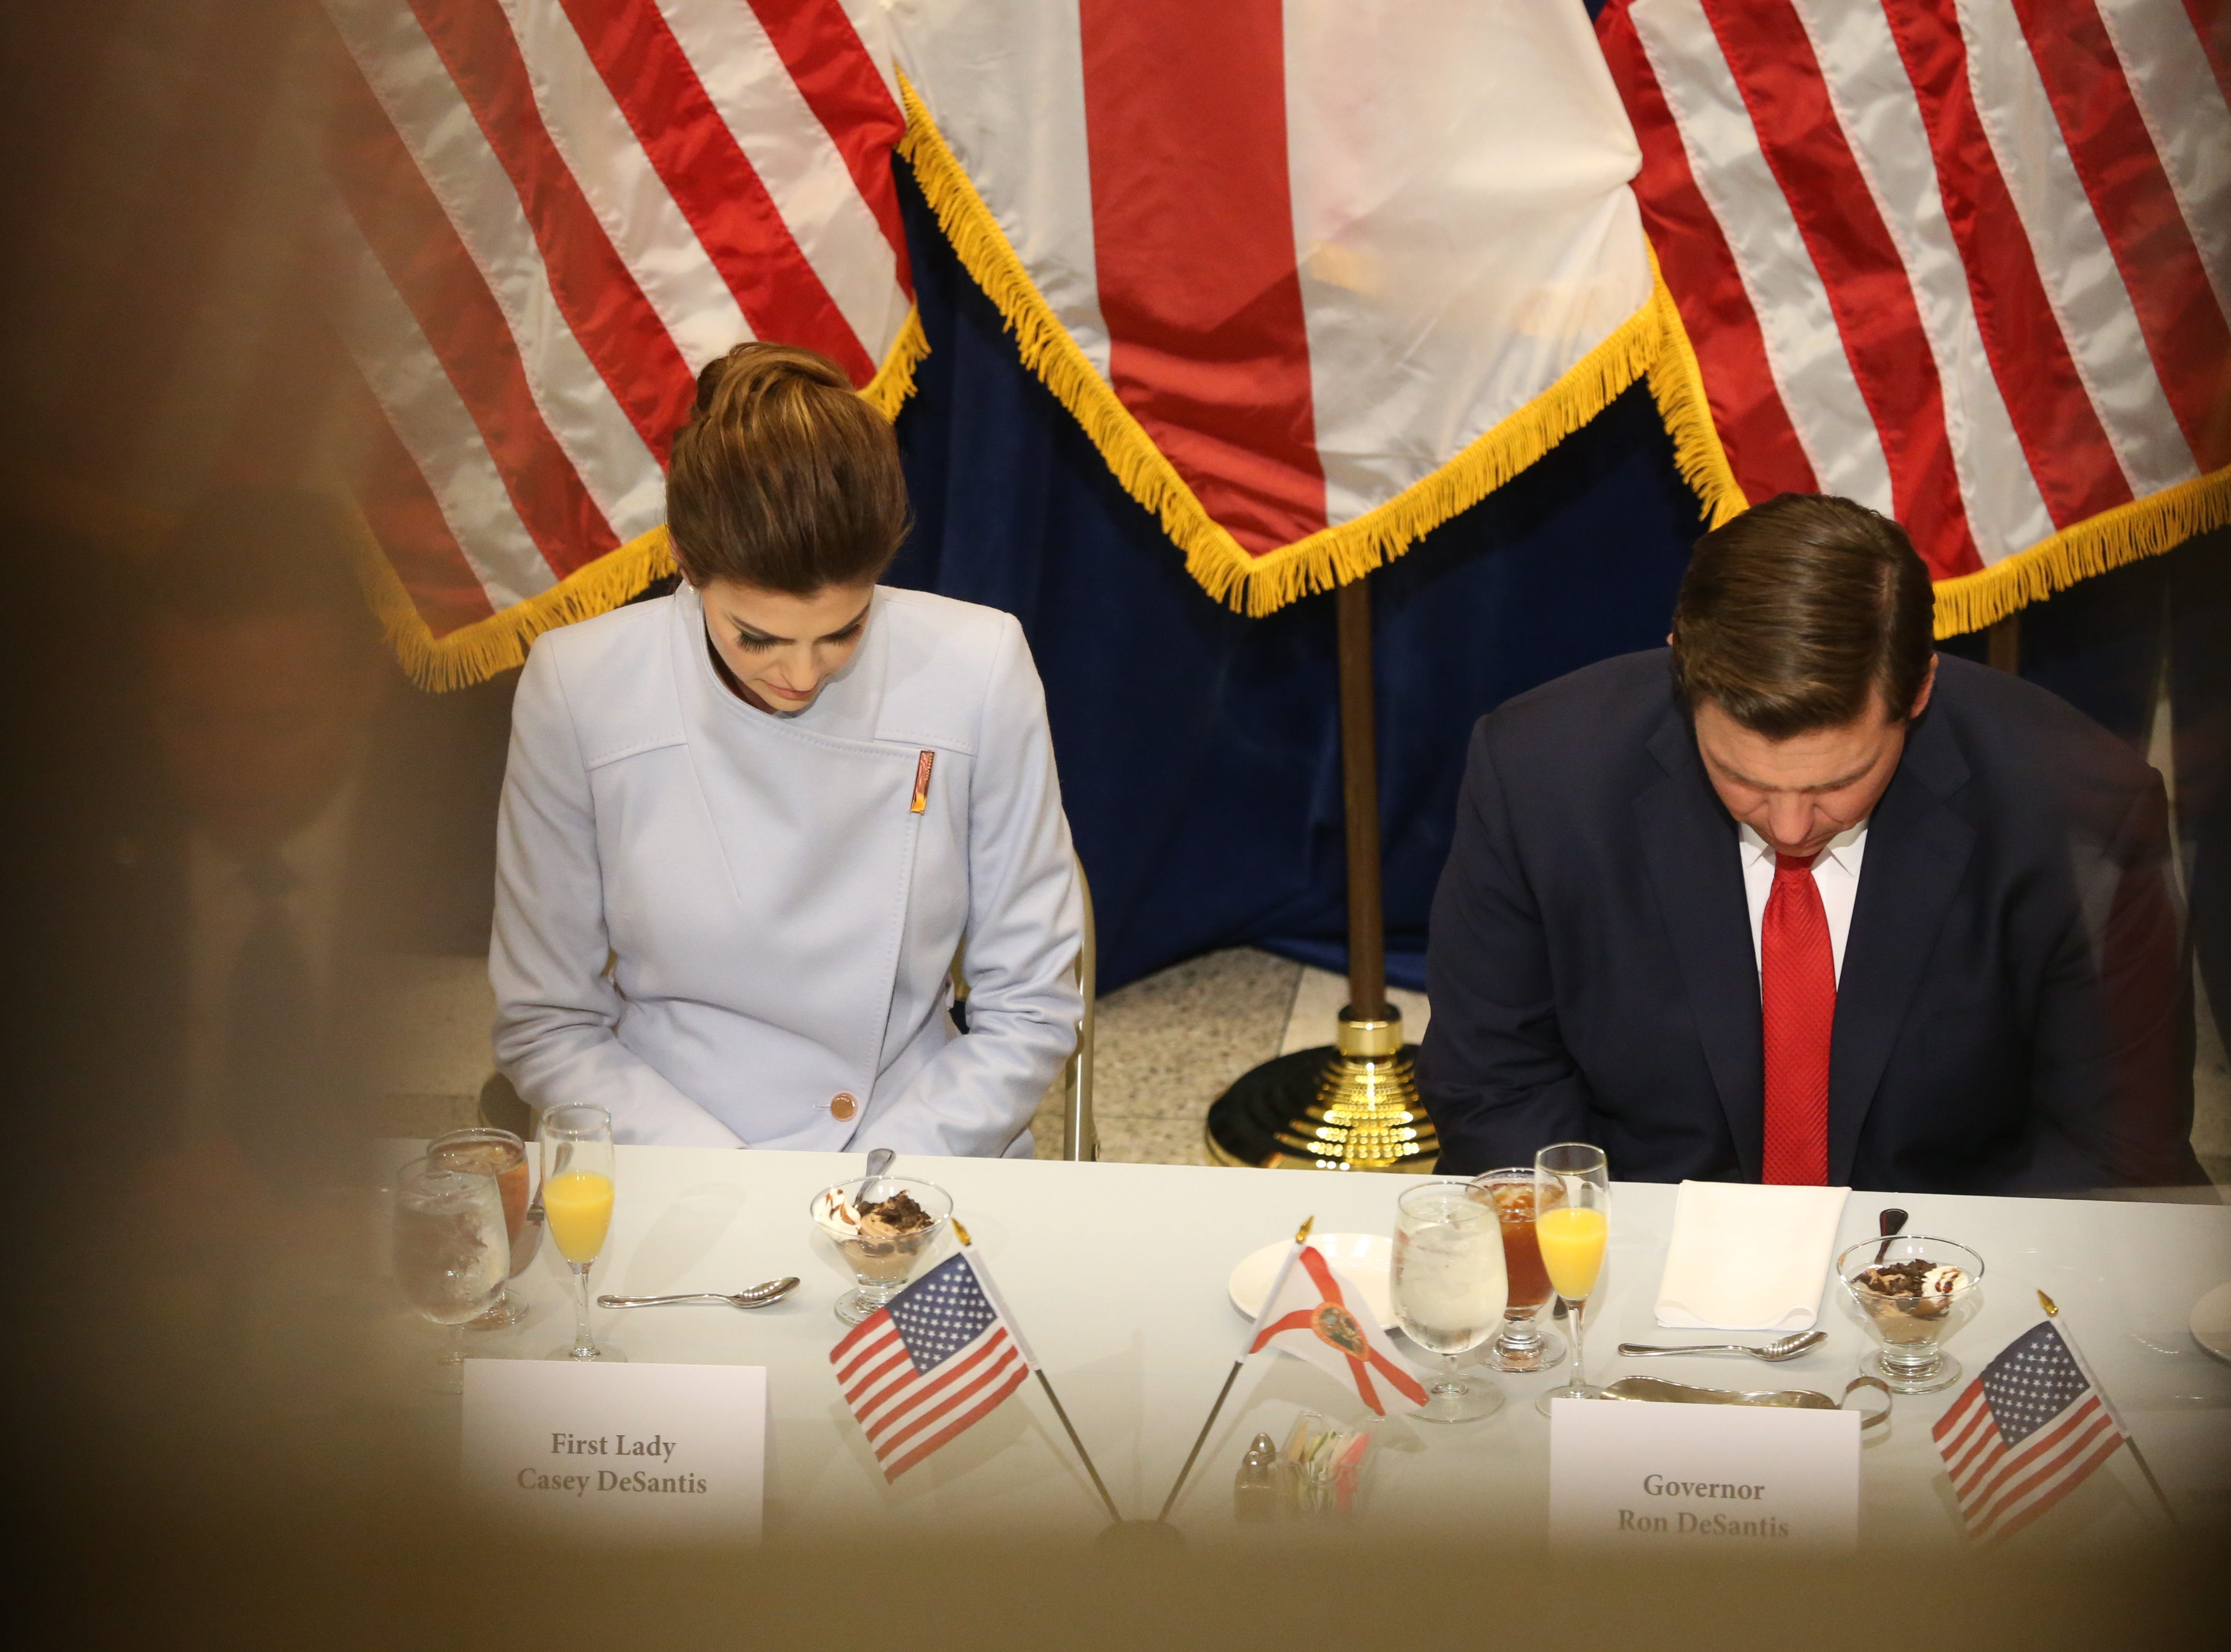 For the first time in Inaugural history, Gov. Ron DeSantis addresses FloridaÕs Legislative leaders and Cabinet officials. DeSantis discusses his plans to work with our stateÕs elected leaders to achieve a Bold Vision for a Brighter Future, Tuesday, Jan. 8, 2019. First lady Casey DeSantis and her husband, Gov. Ron DeSantis bow their head in prayer before the luncheon.